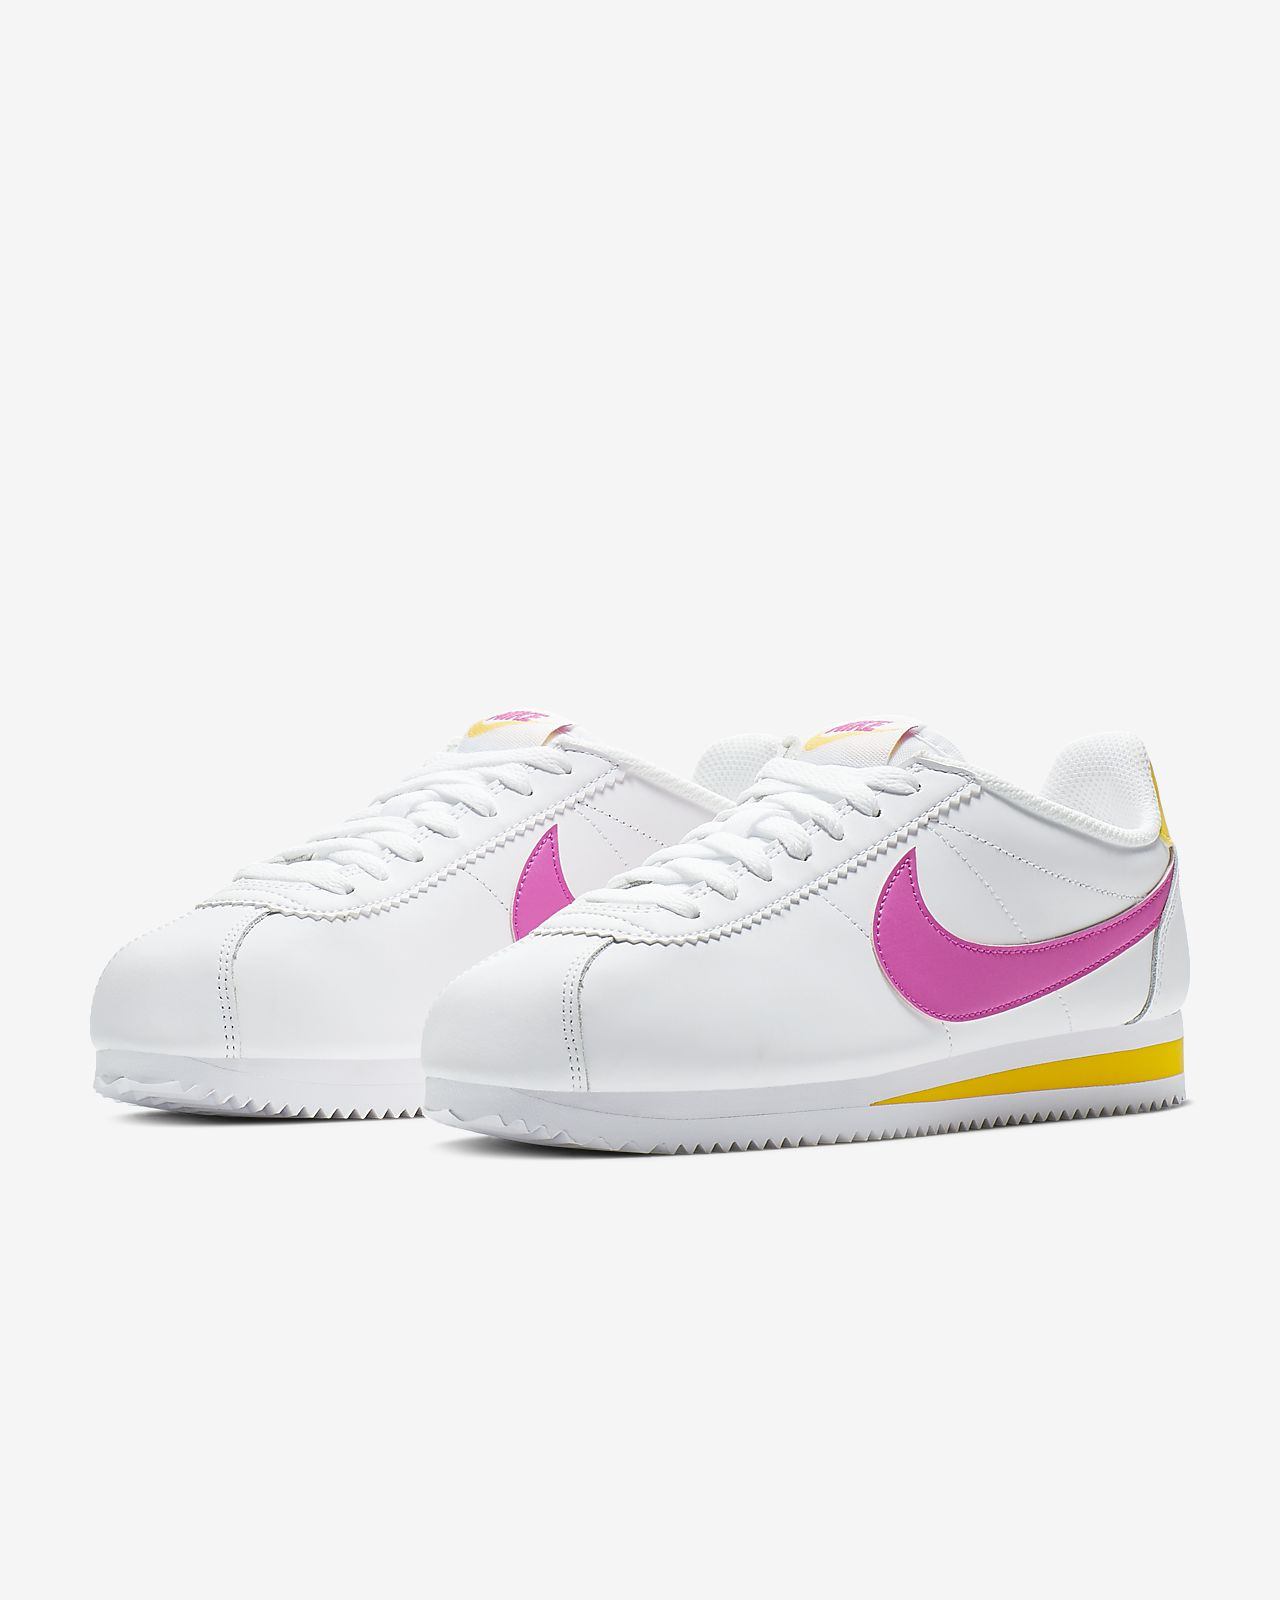 free shipping c41b7 4916c ... Chaussure Nike Classic Cortez pour Femme